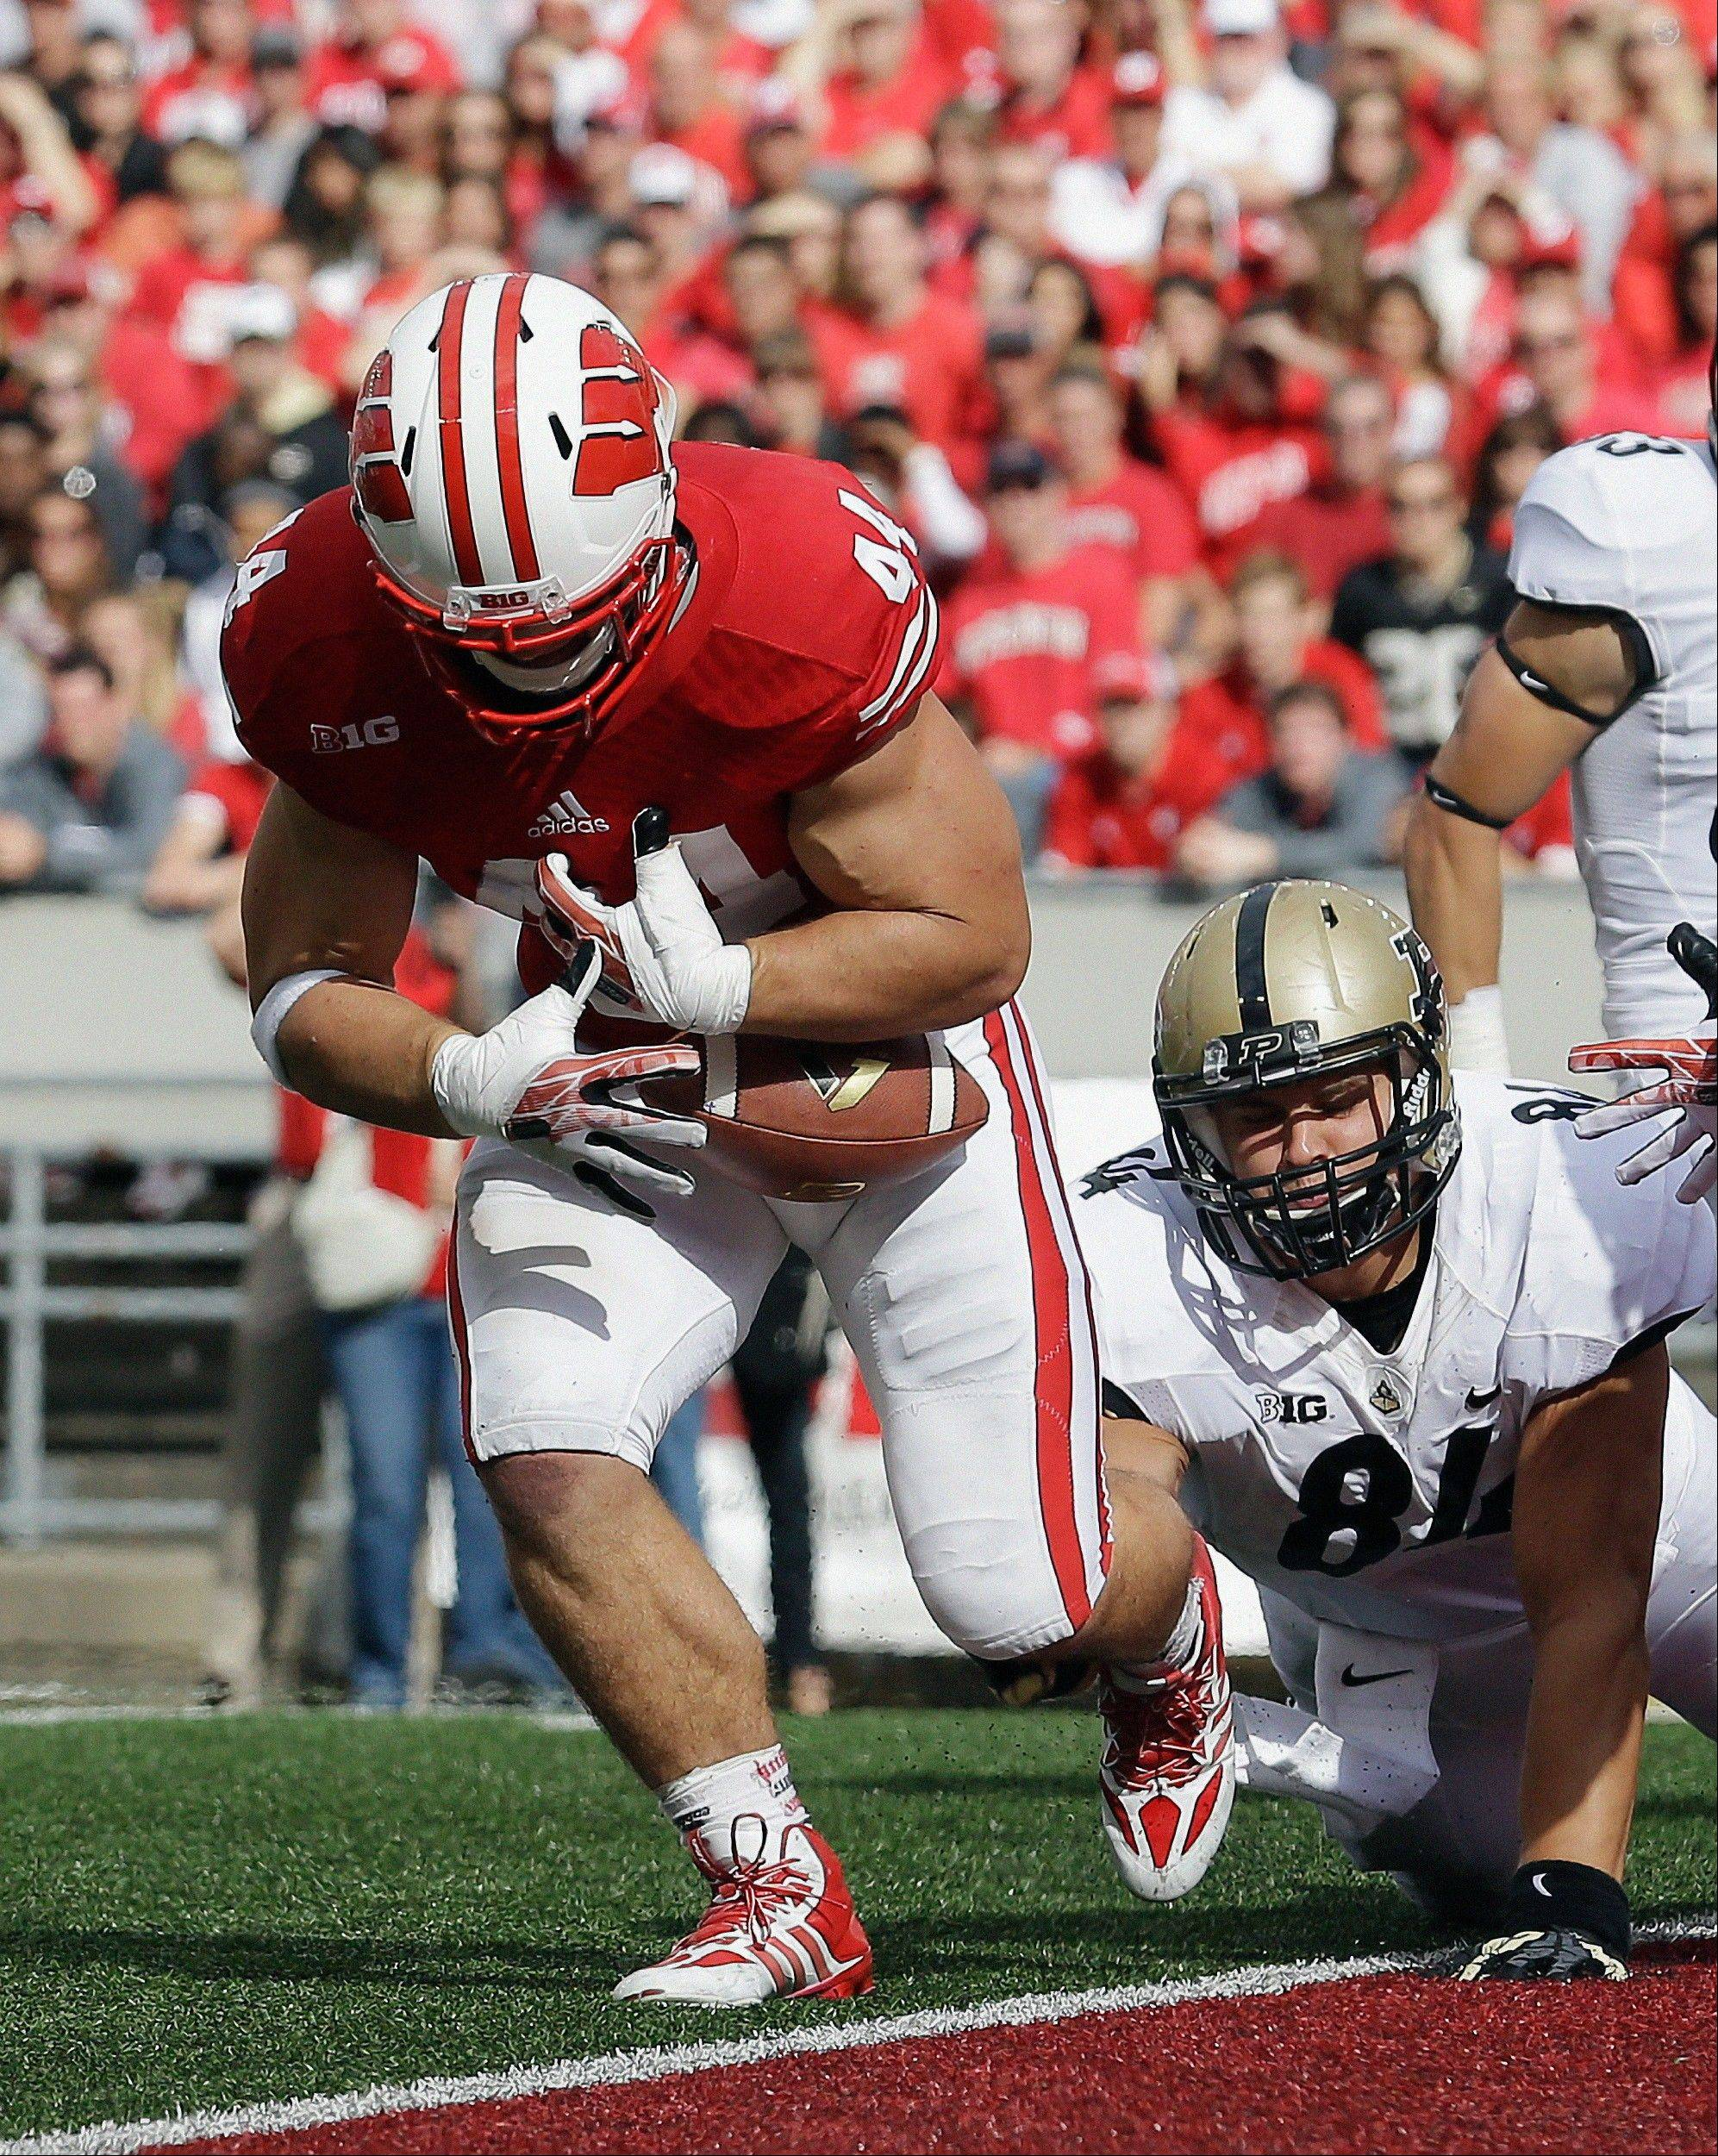 Wisconsin's Chris Borland nearly intercepts a pass in front of Purdue's Justin Sinz during the first half Saturday's game in Madison.